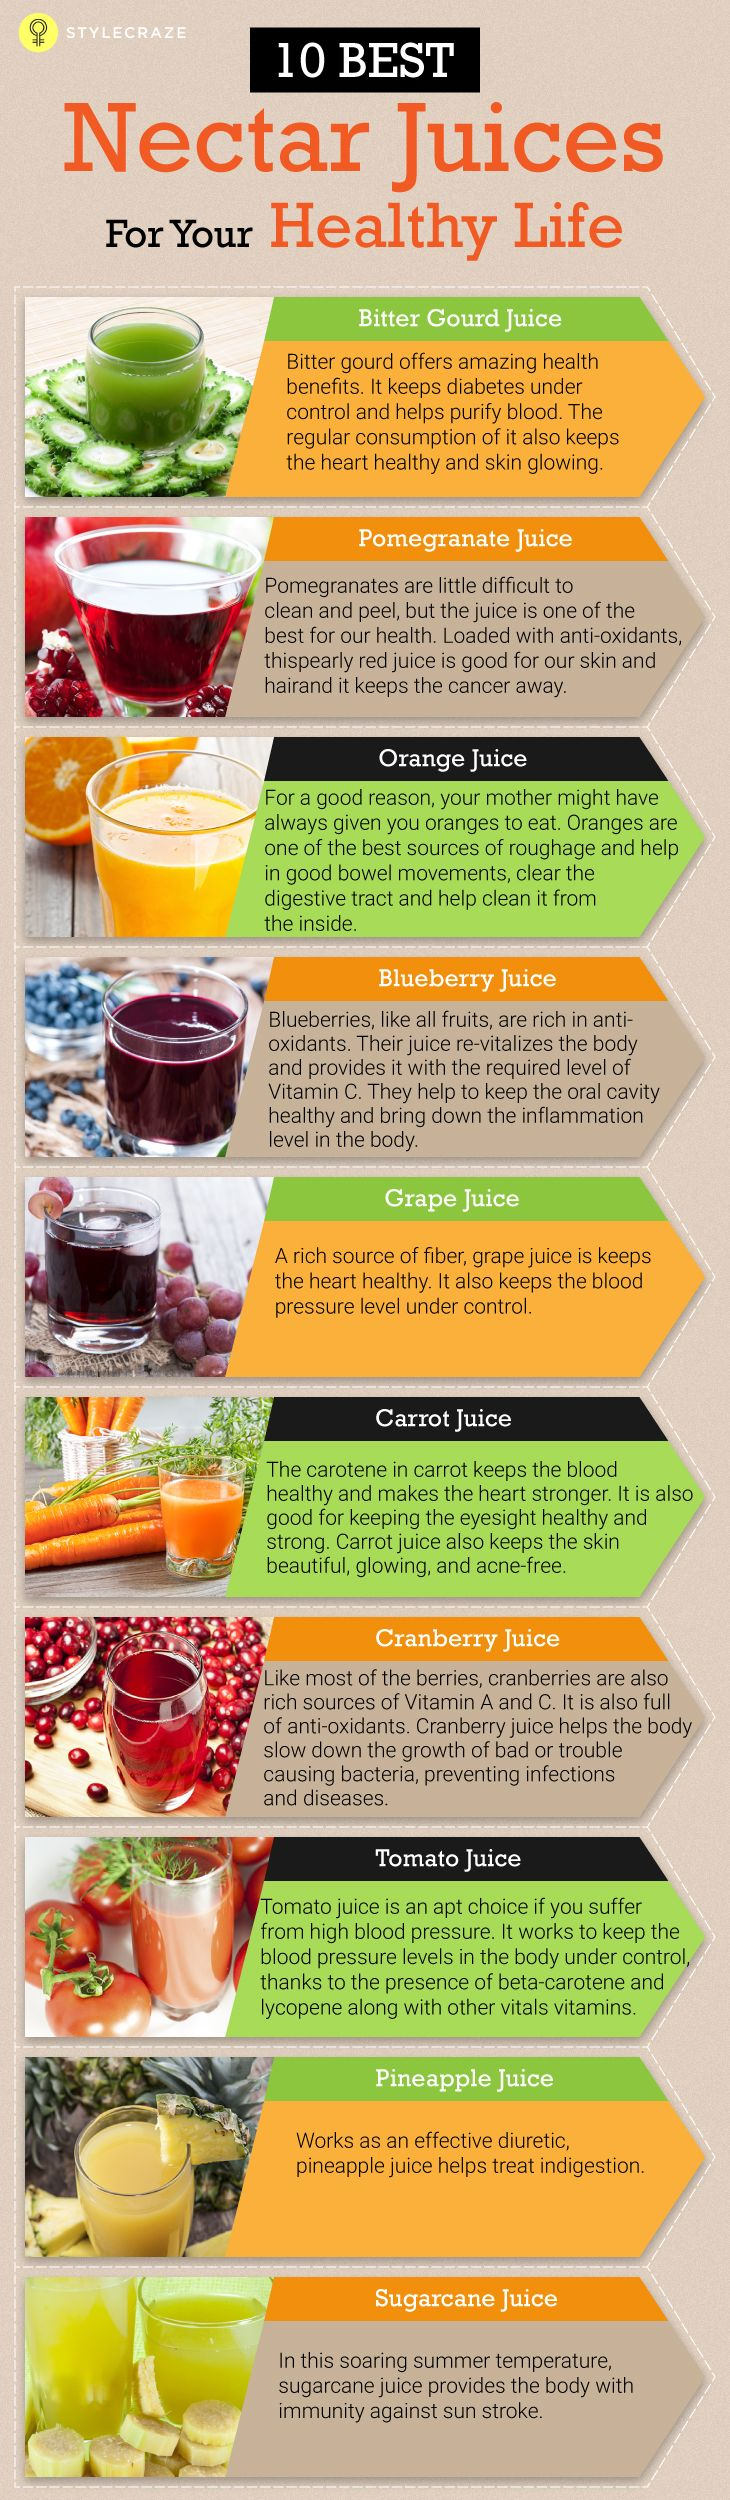 2 Simple Methods To Make Concentrated Fruit Juices At Home